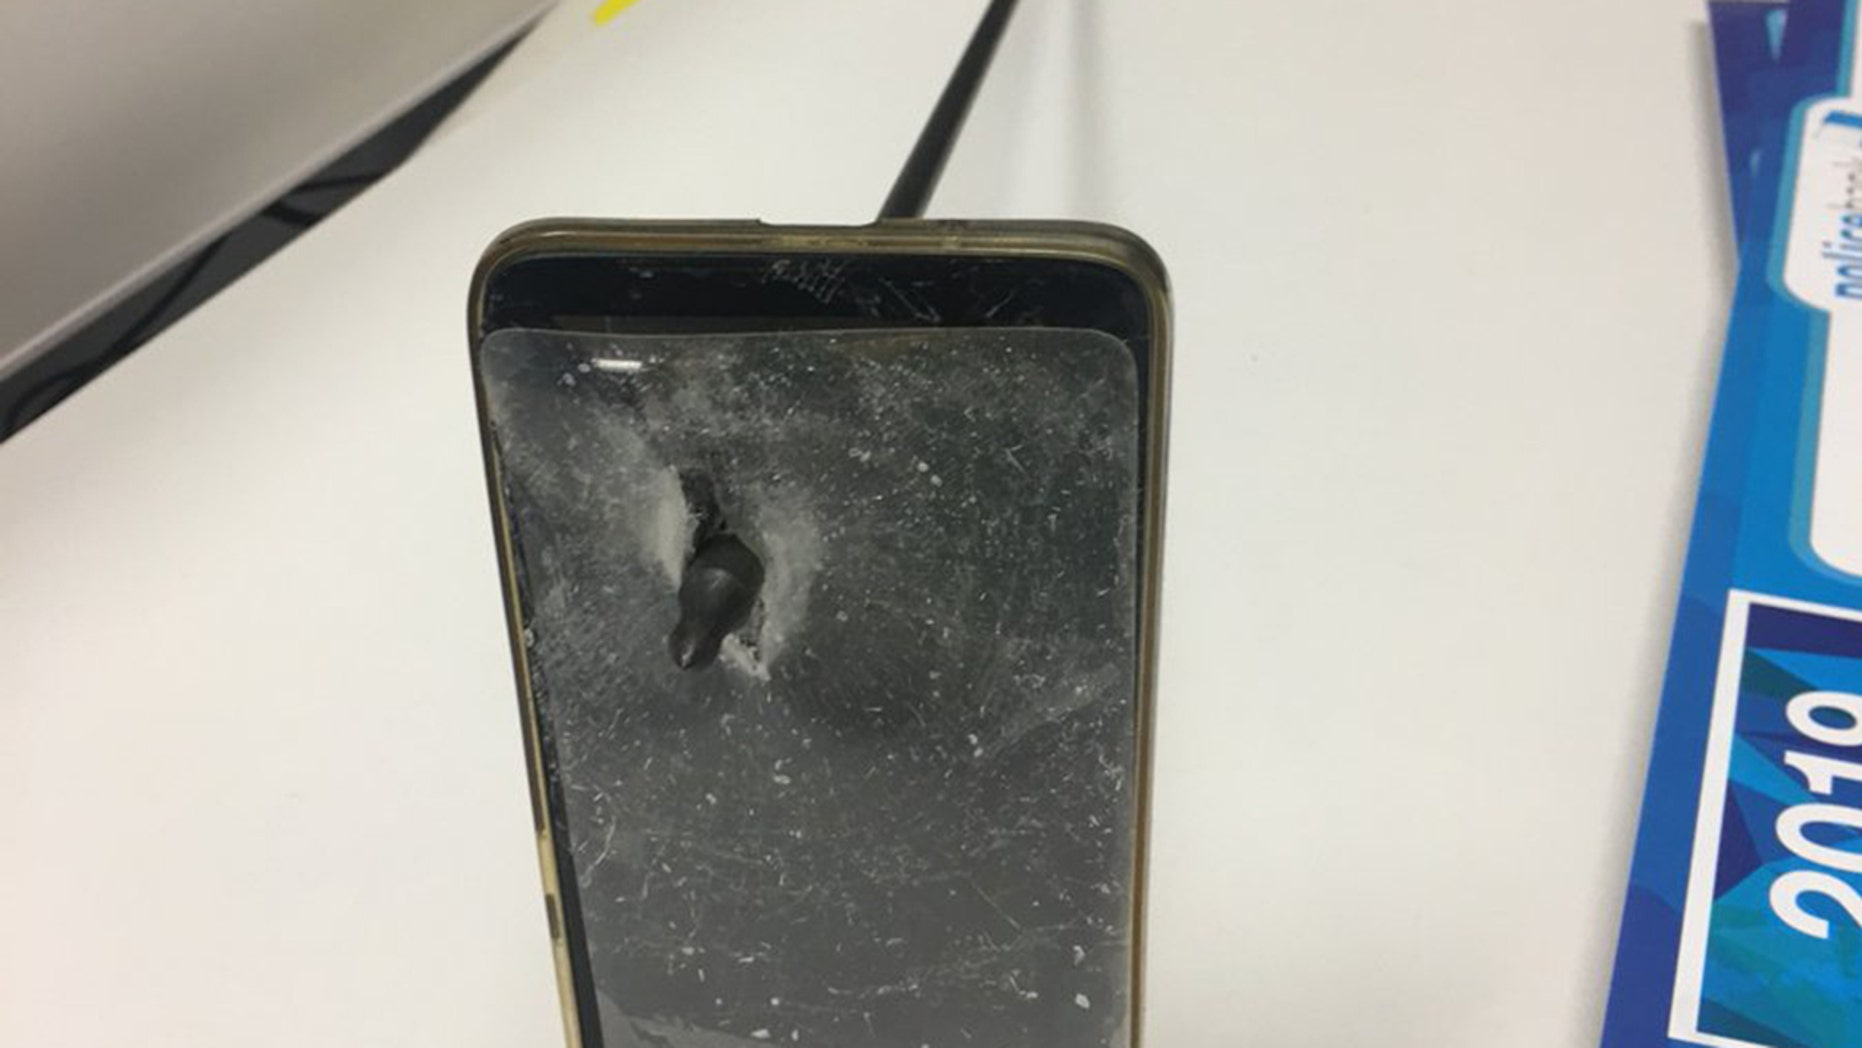 An Australian man was able to block an arrow from hitting him after his phone become a shield, police said.